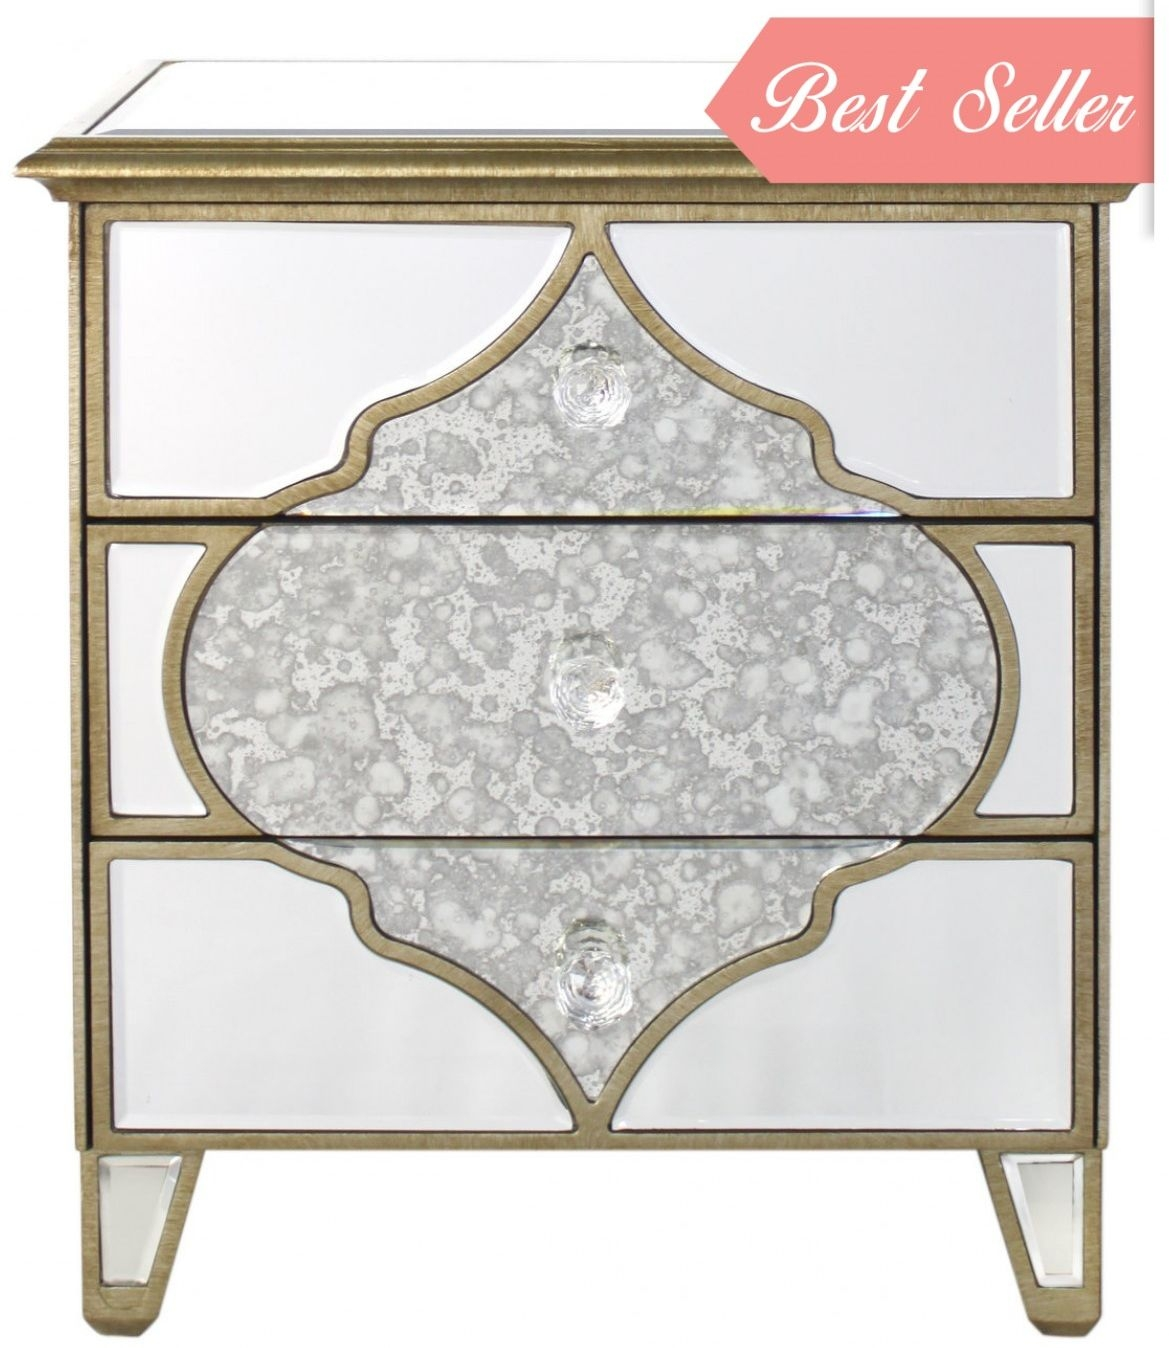 Morocco Antique Mirrored Cabinet - 3 Drawer